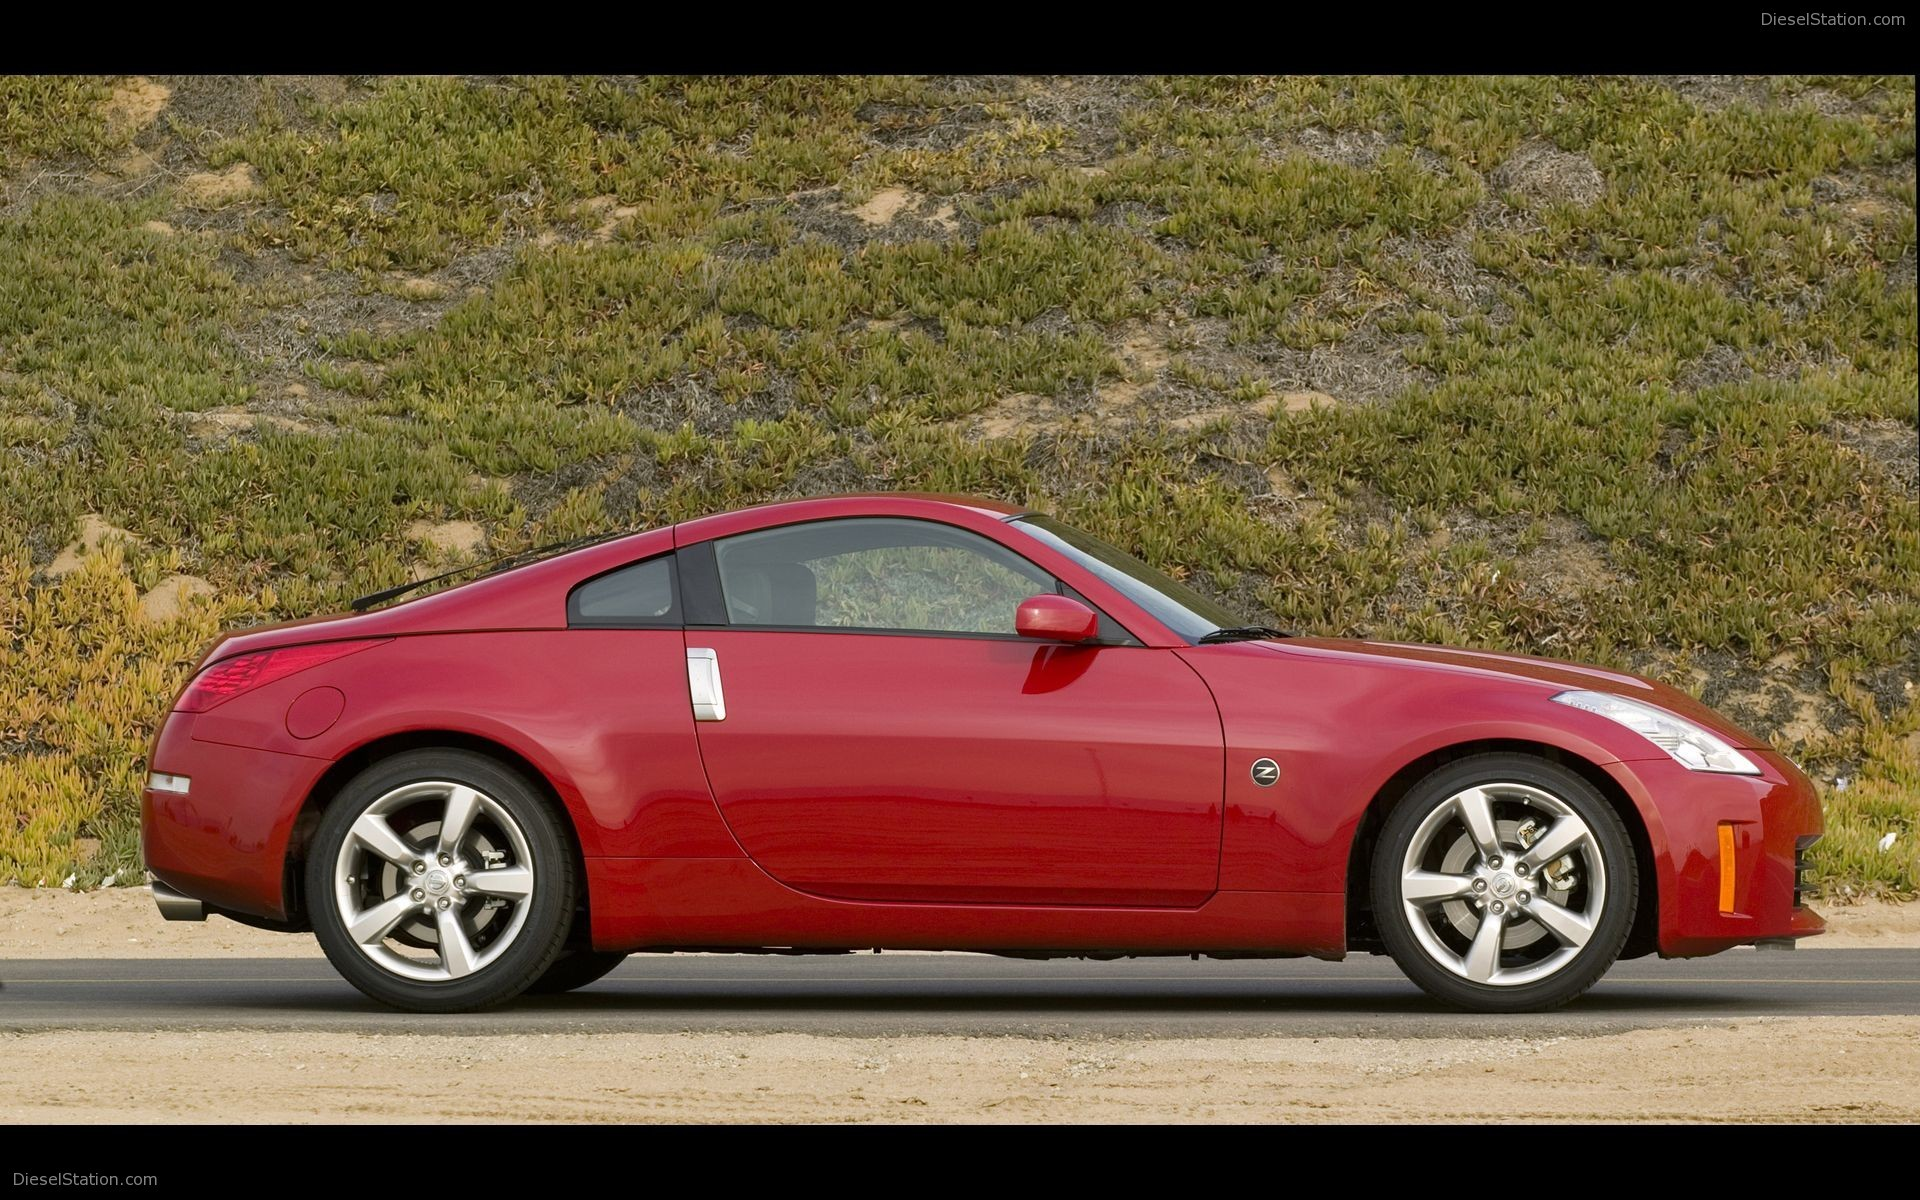 Nissan 350Z Coupe (2008)